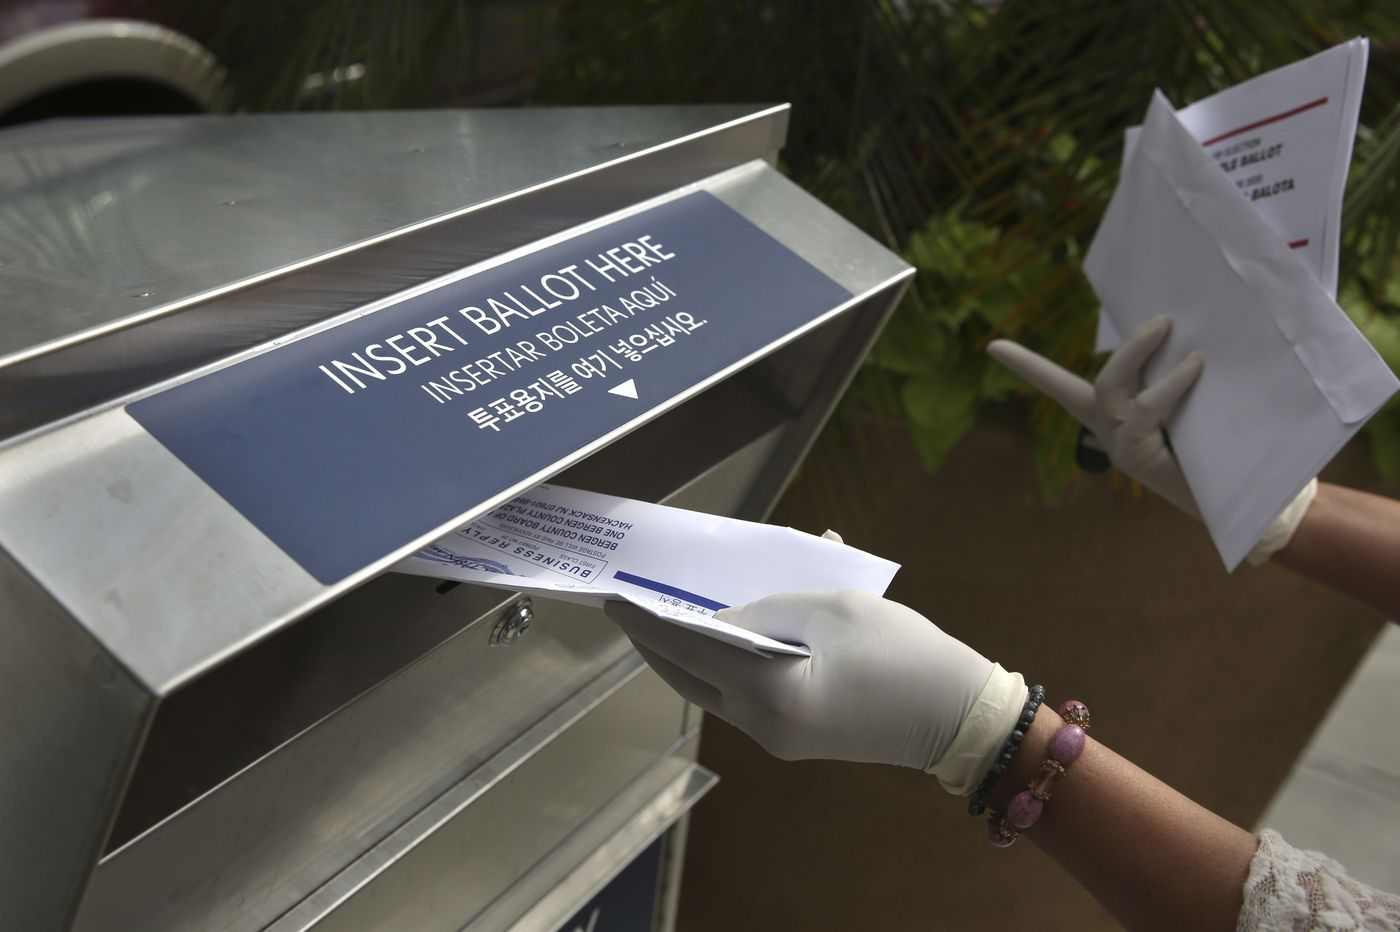 USPS is key to voting but other parts of the system need improvement too | Editorial